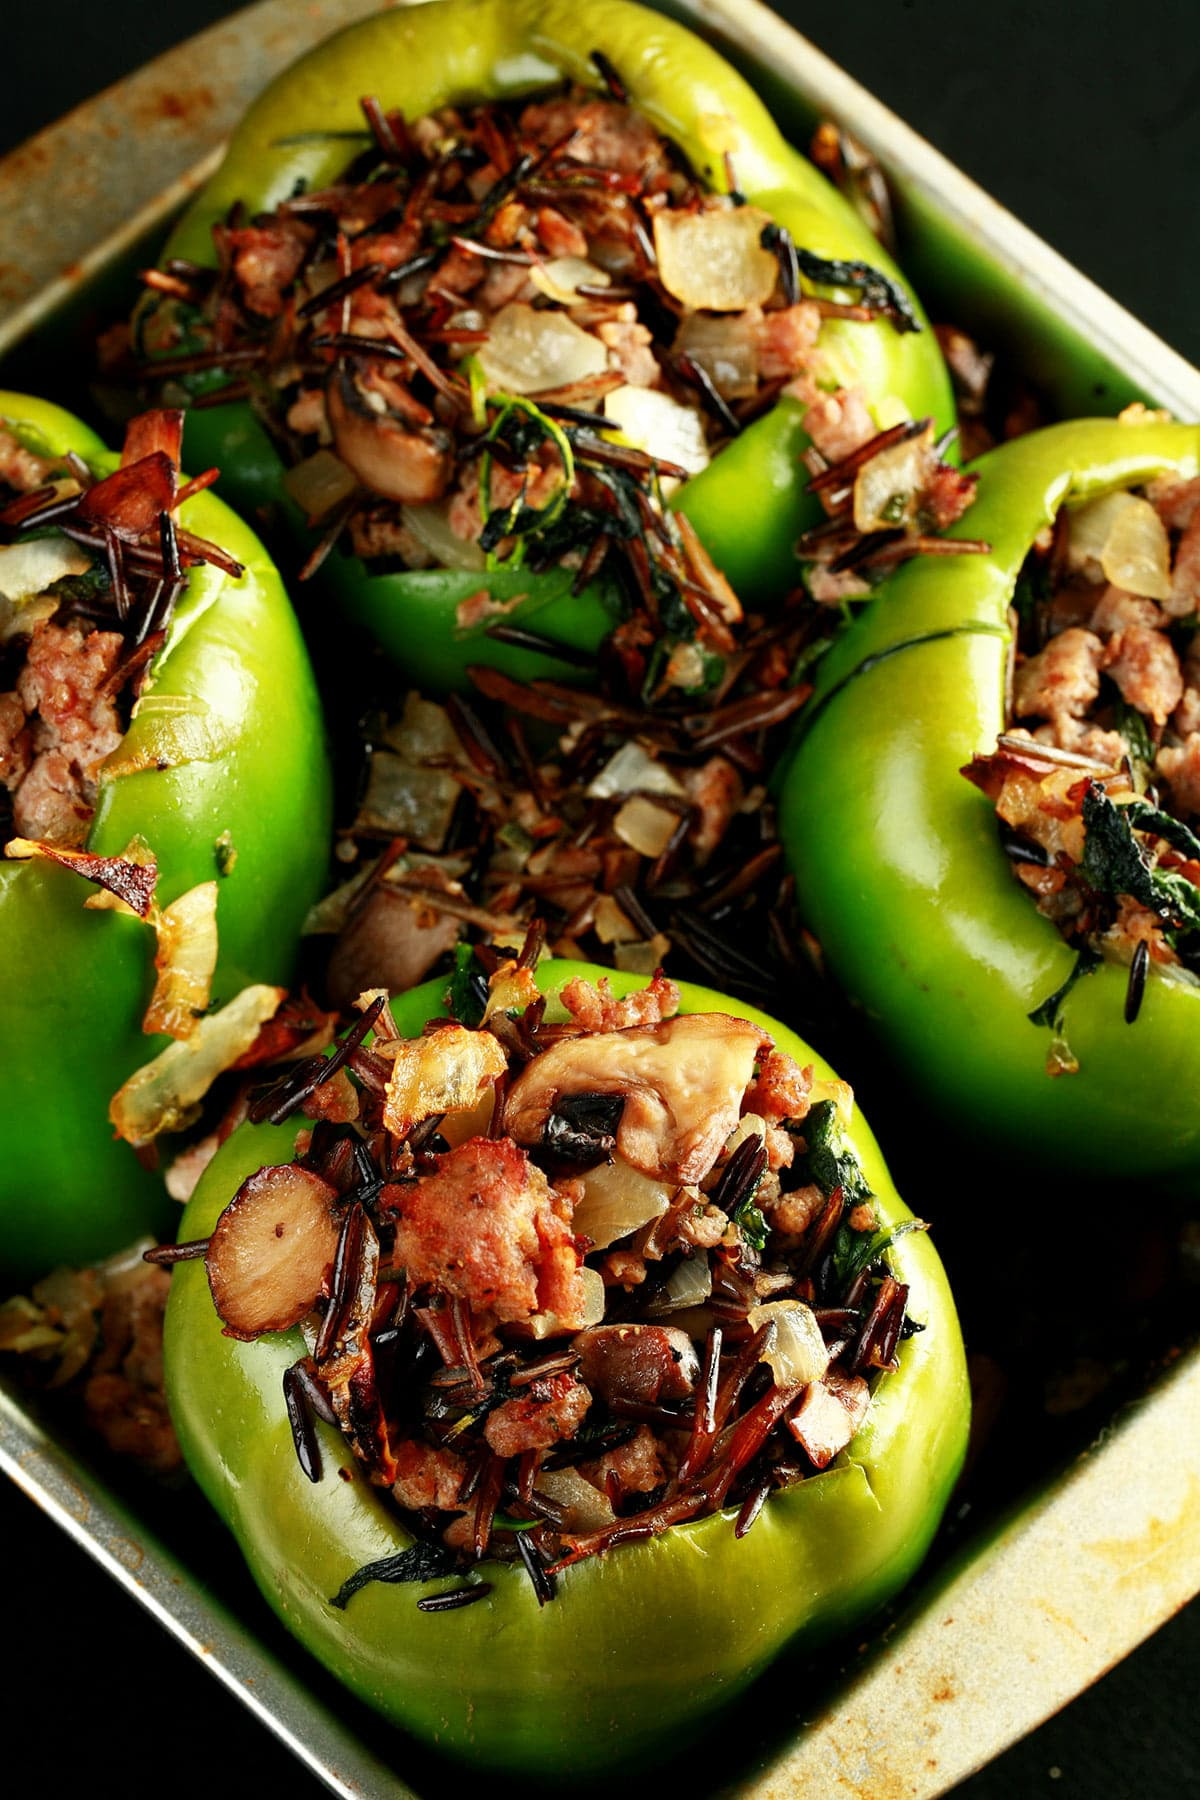 Close up view of a pan of wild rice and sausage stuffed peppers.